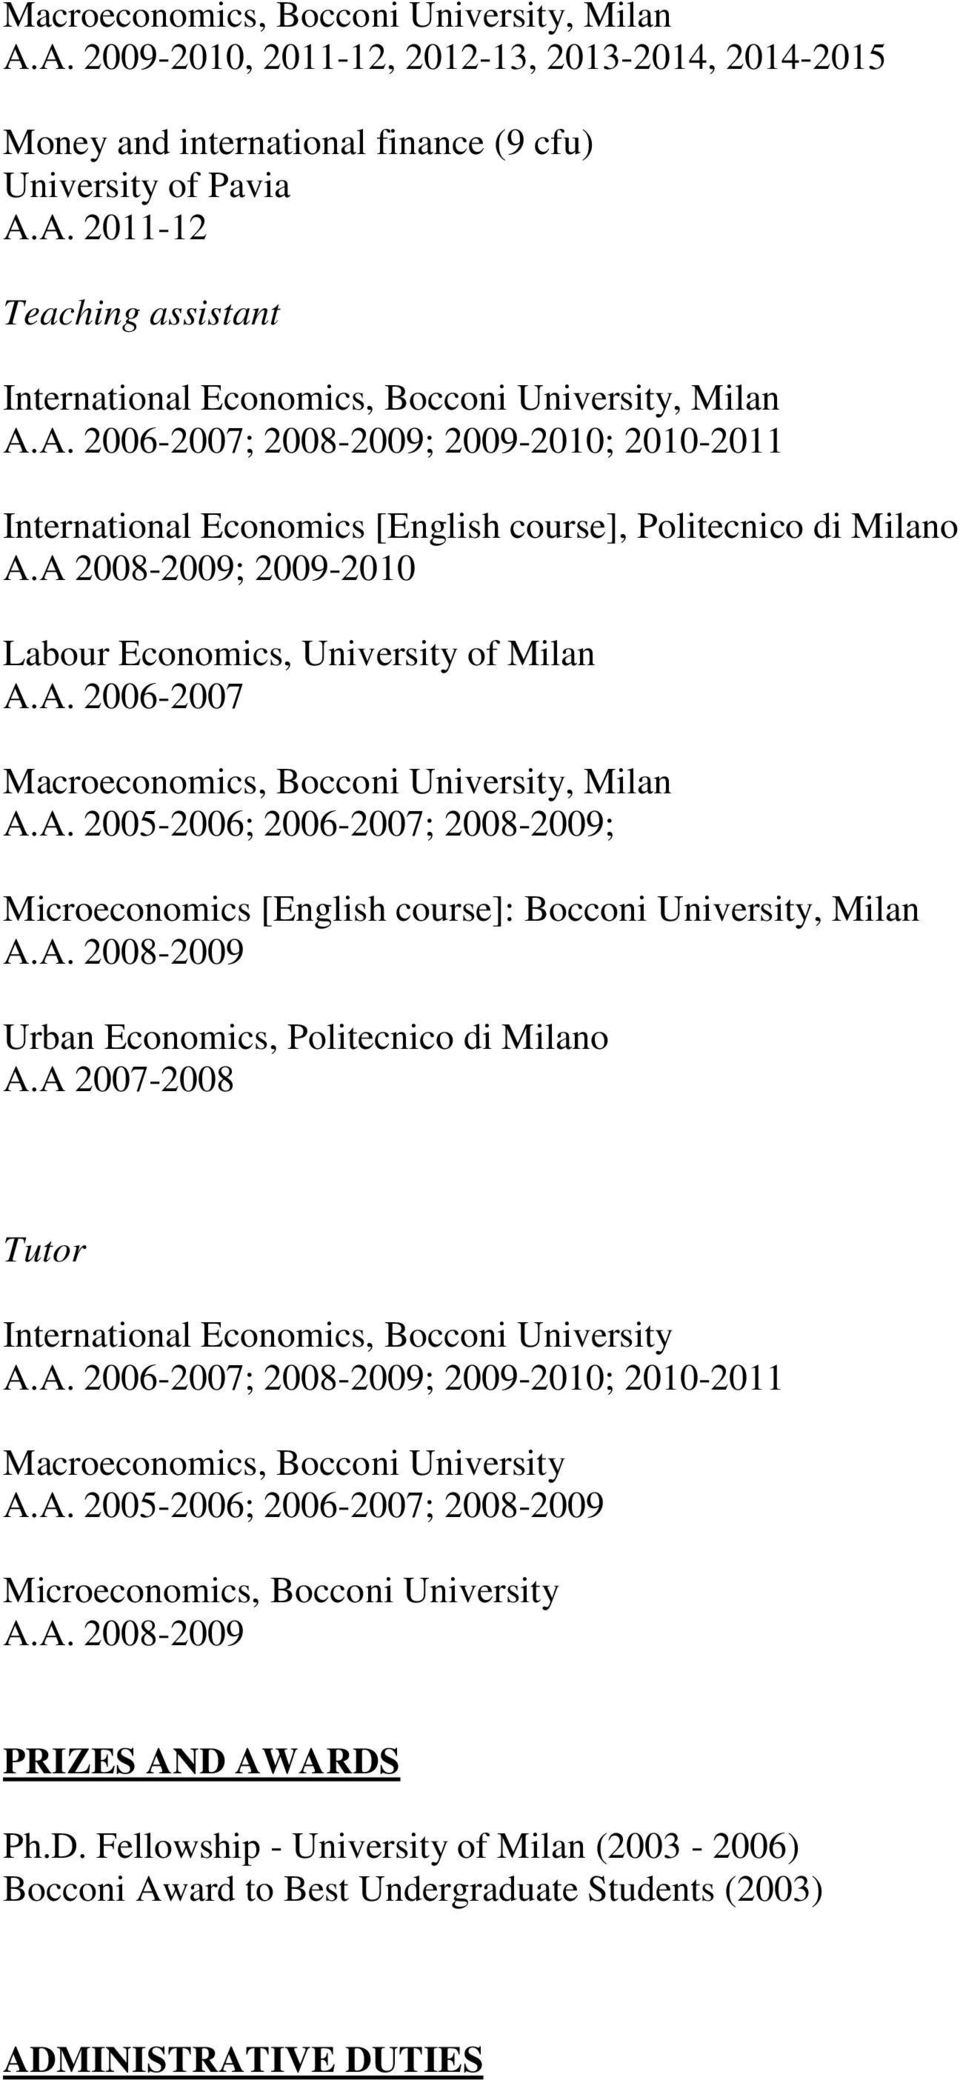 A. 2005-2006; 2006-2007; 2008-2009; Microeconomics [English course]: Bocconi University, Milan A.A. 2008-2009 Urban Economics, Politecnico di Milano A.